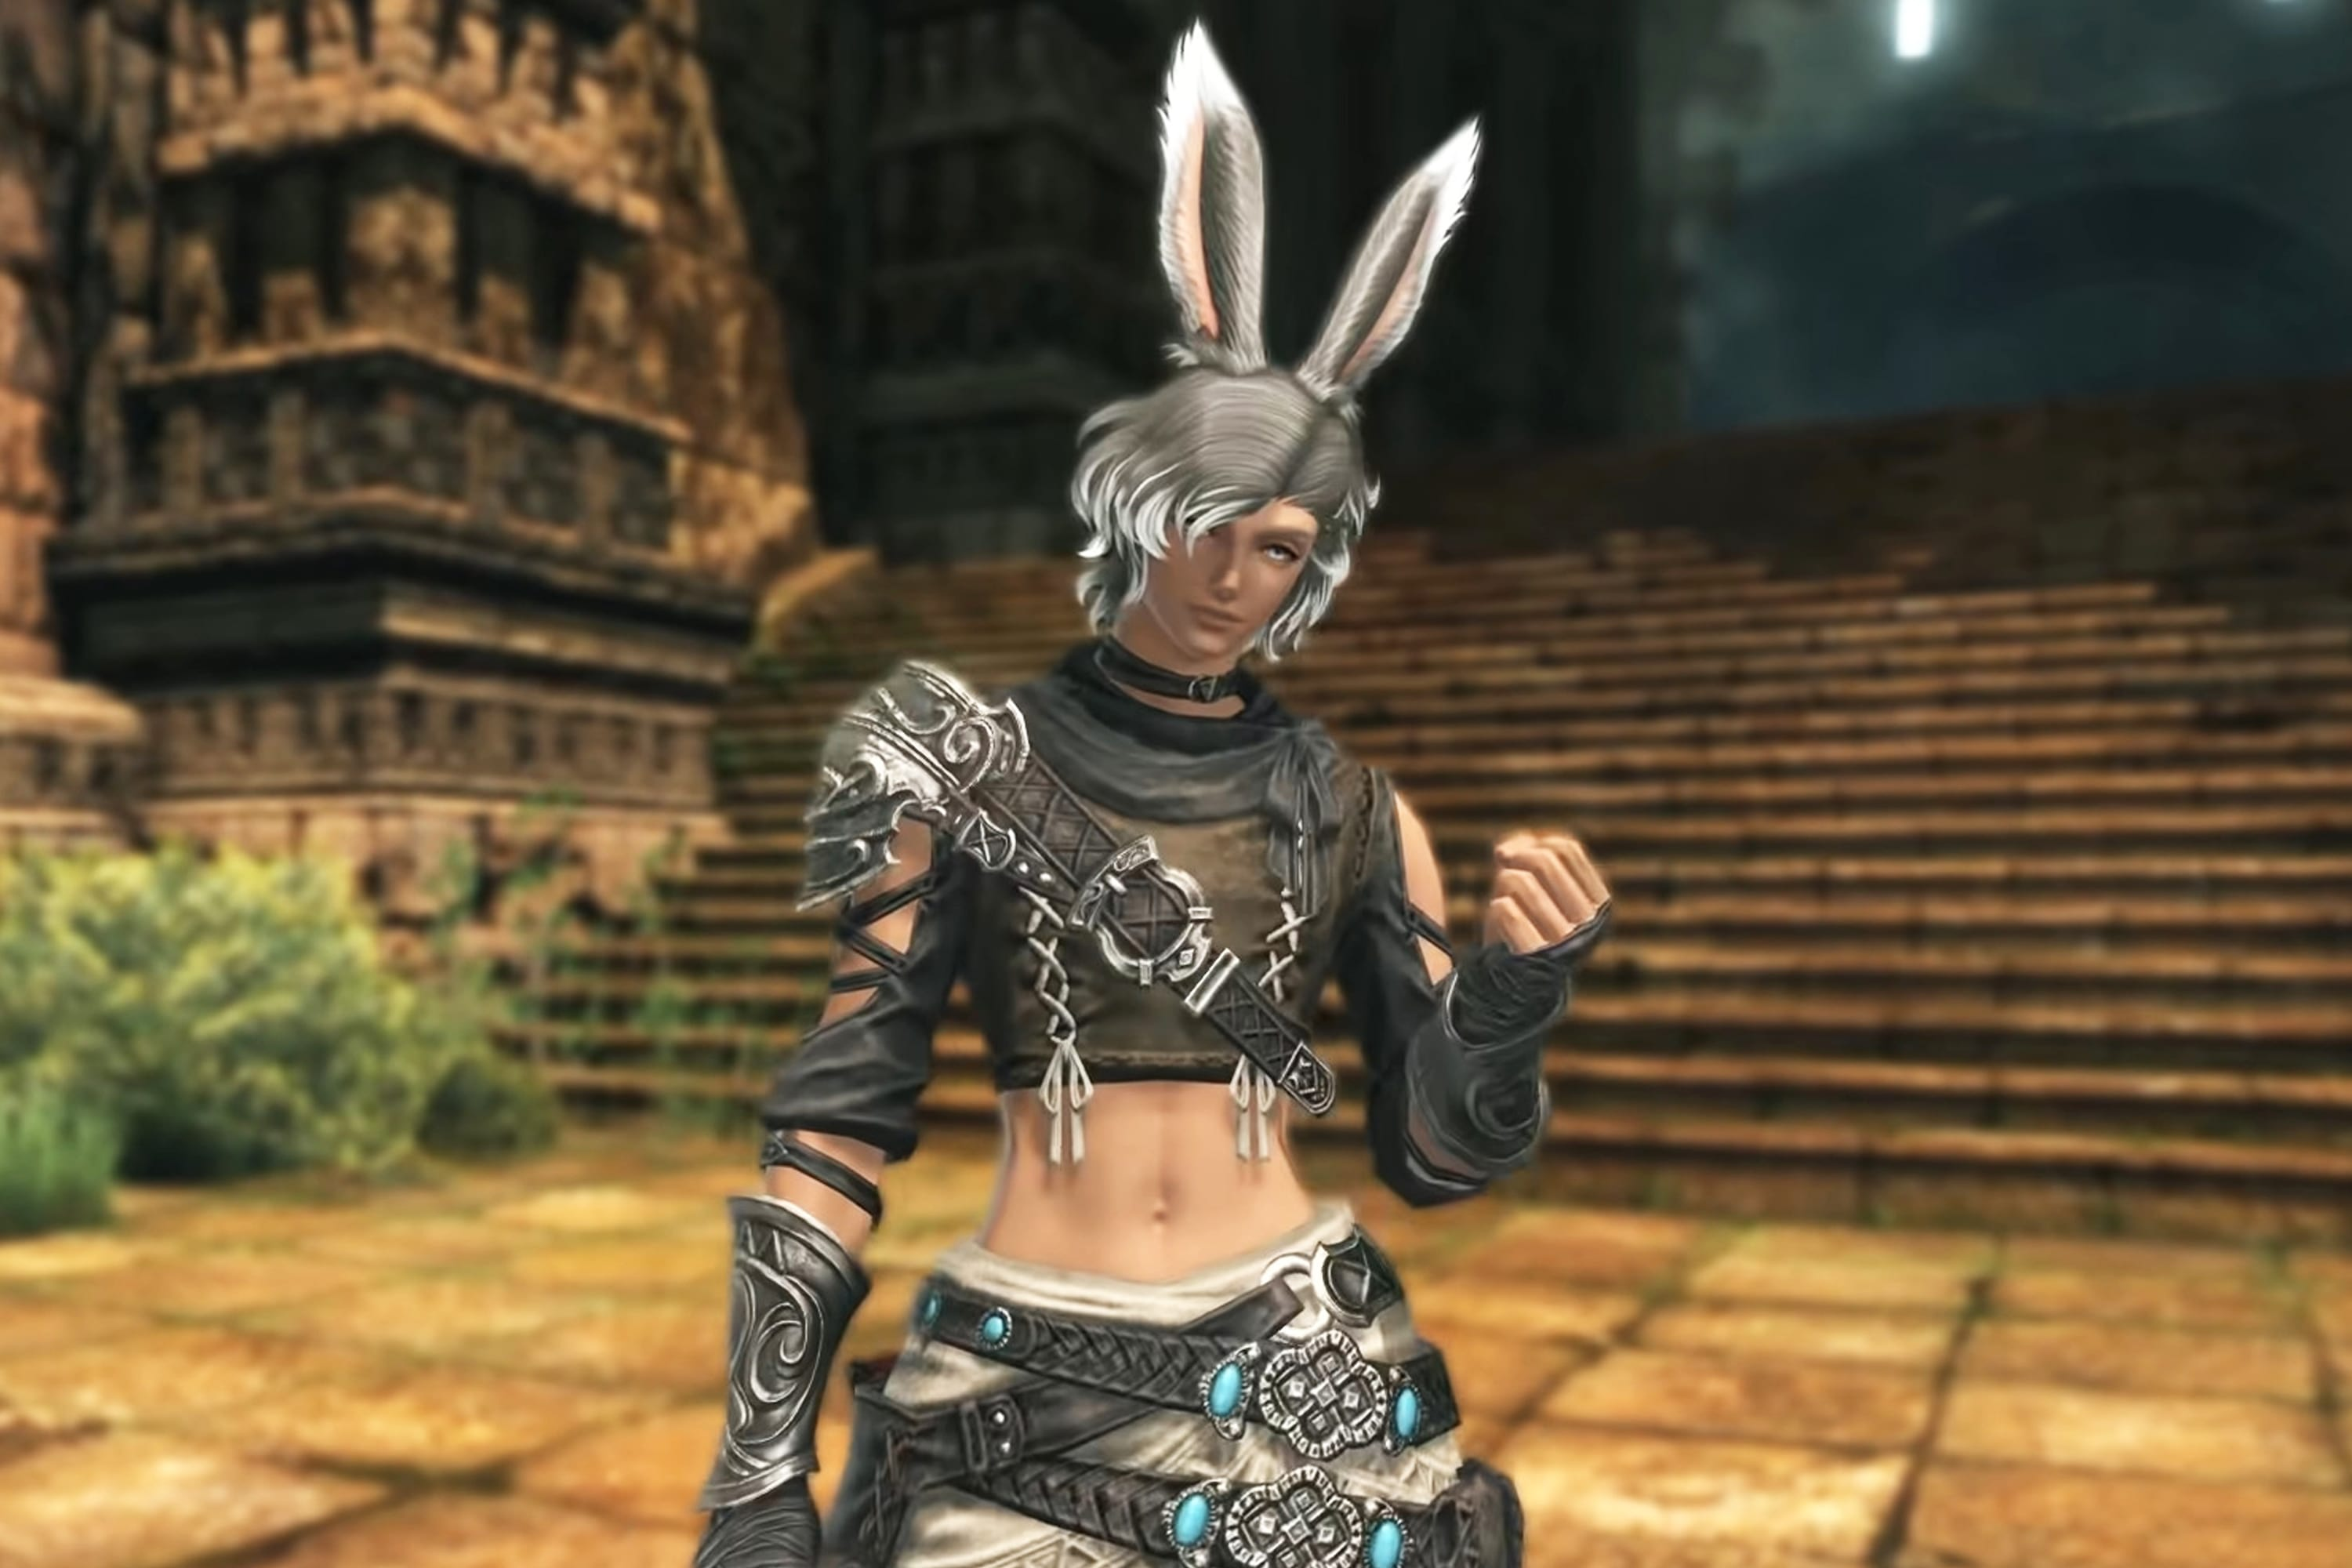 Final Fantasy Xiv Artists Used Their Free Time To Create The Male Viera